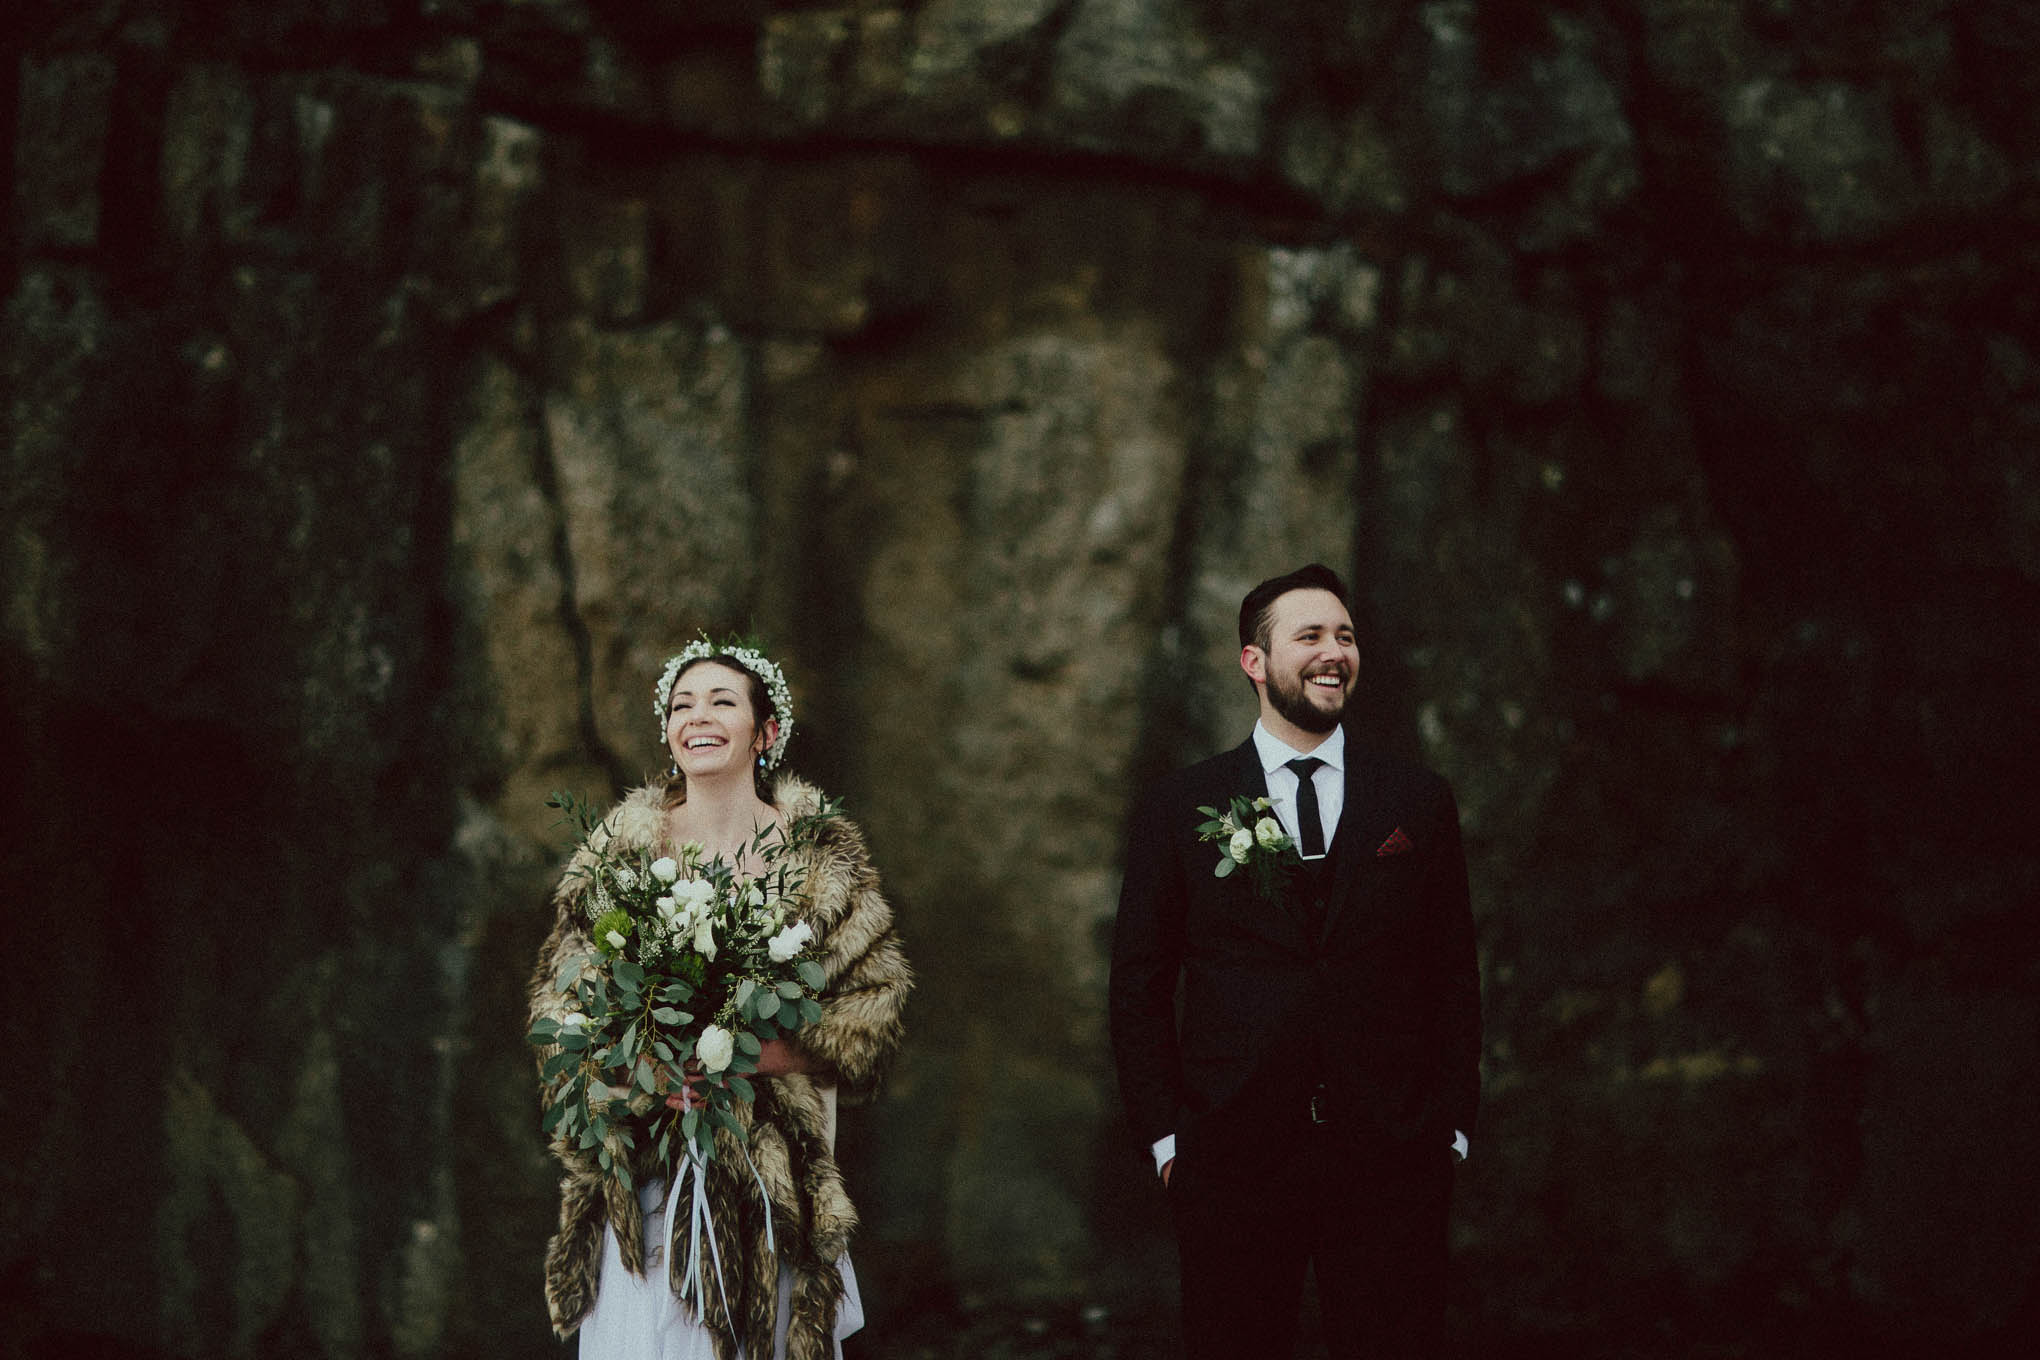 Categories: Weddings-Real Wedding: Katy & James - Photography by Ryan & Heidi Brown of Forged in the North